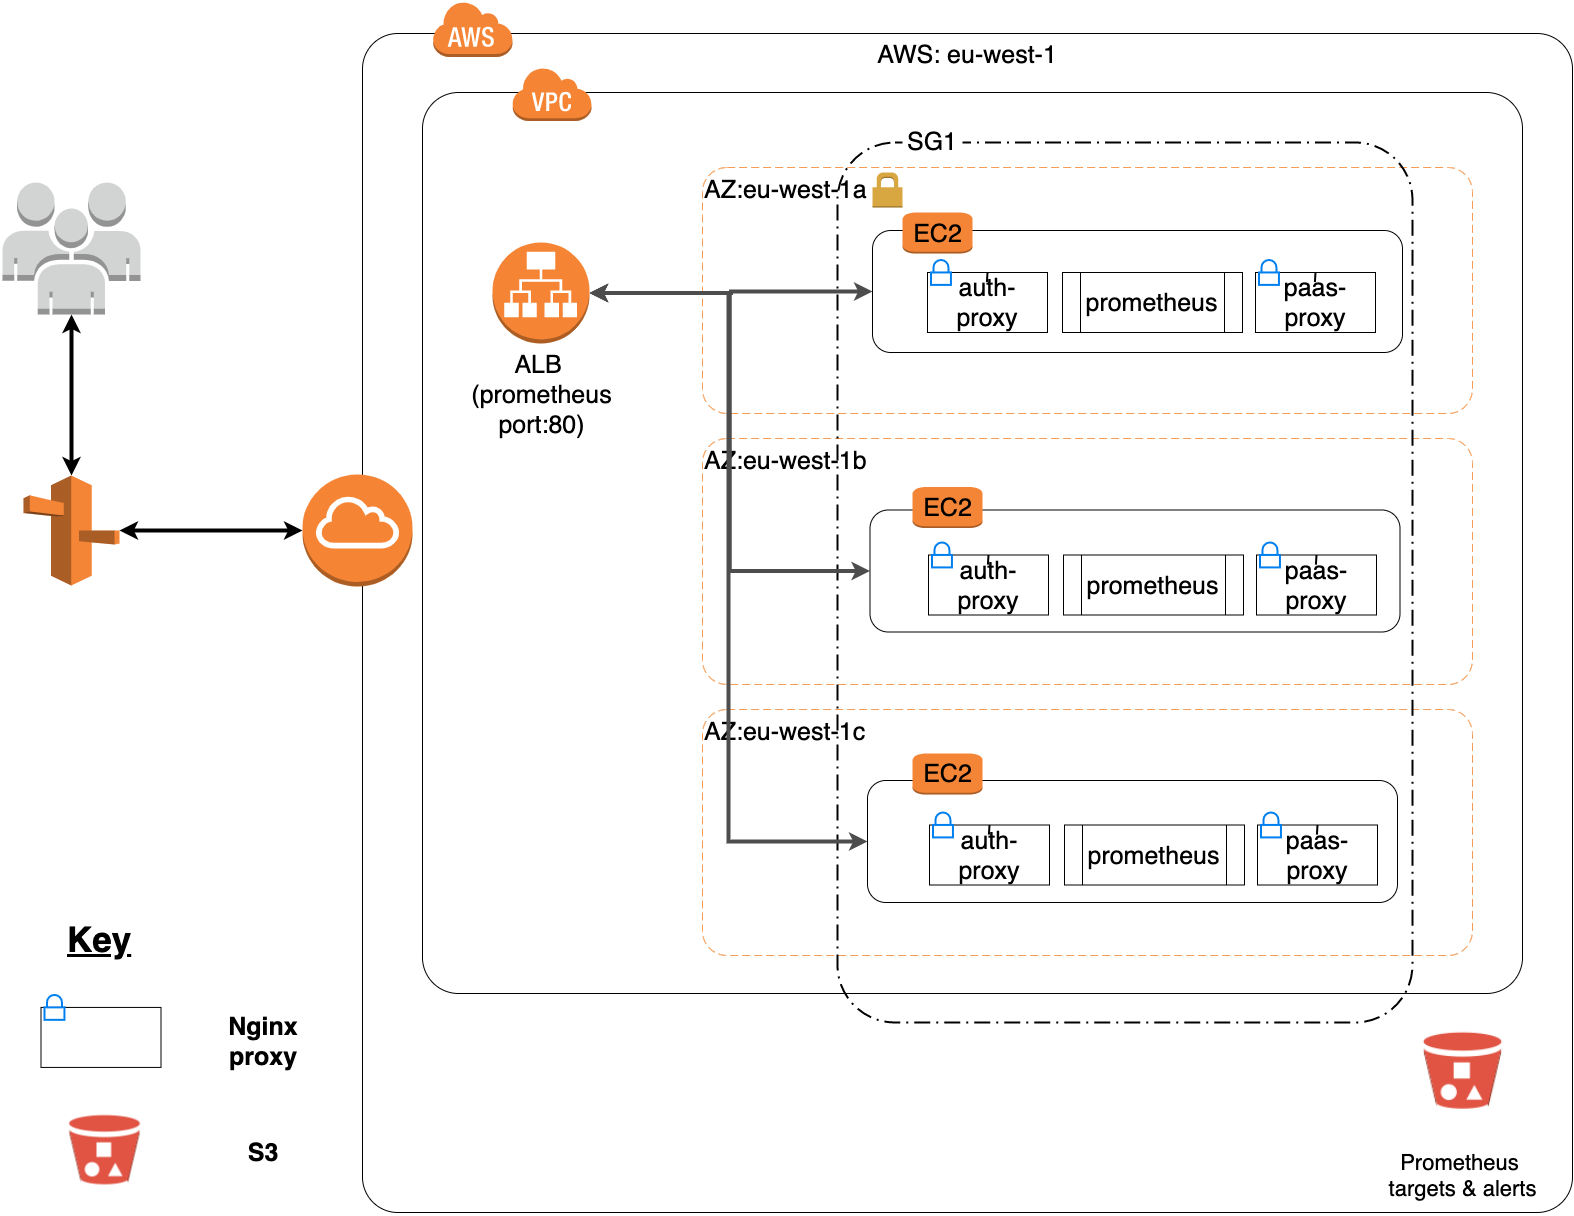 AWS components